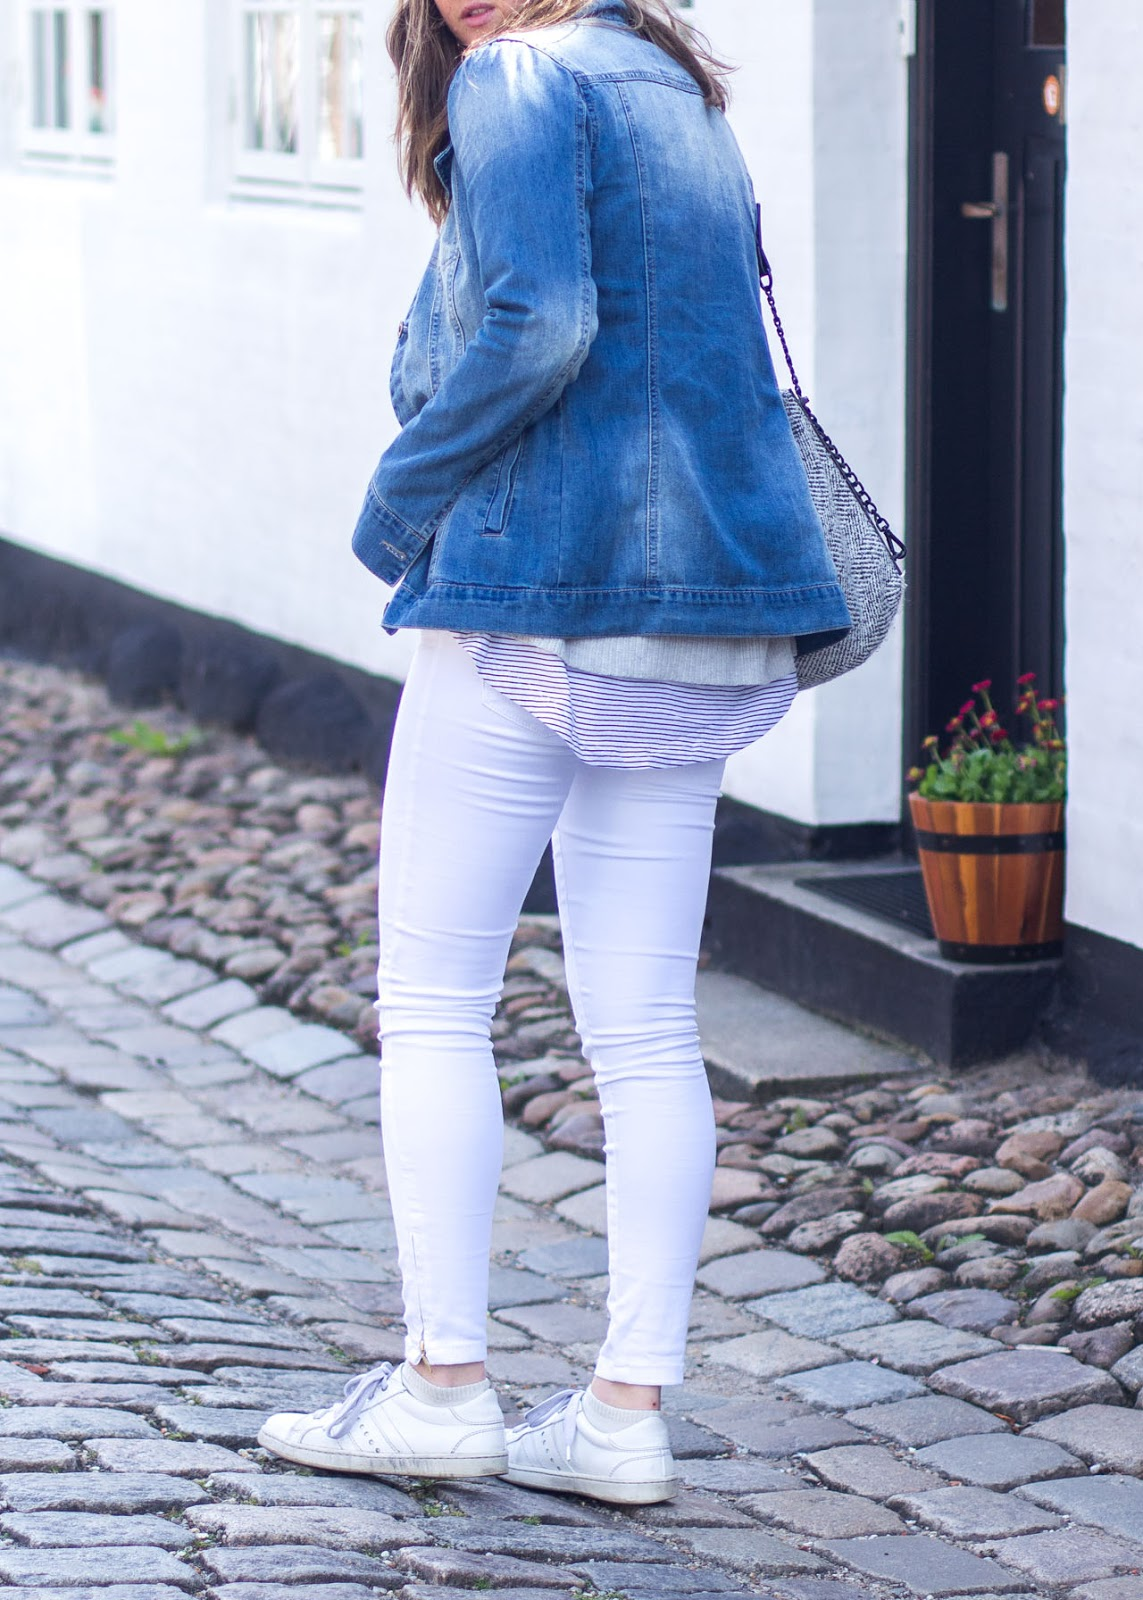 Travel - Fashion - Blogger - Vacation - Outfit - Denmark